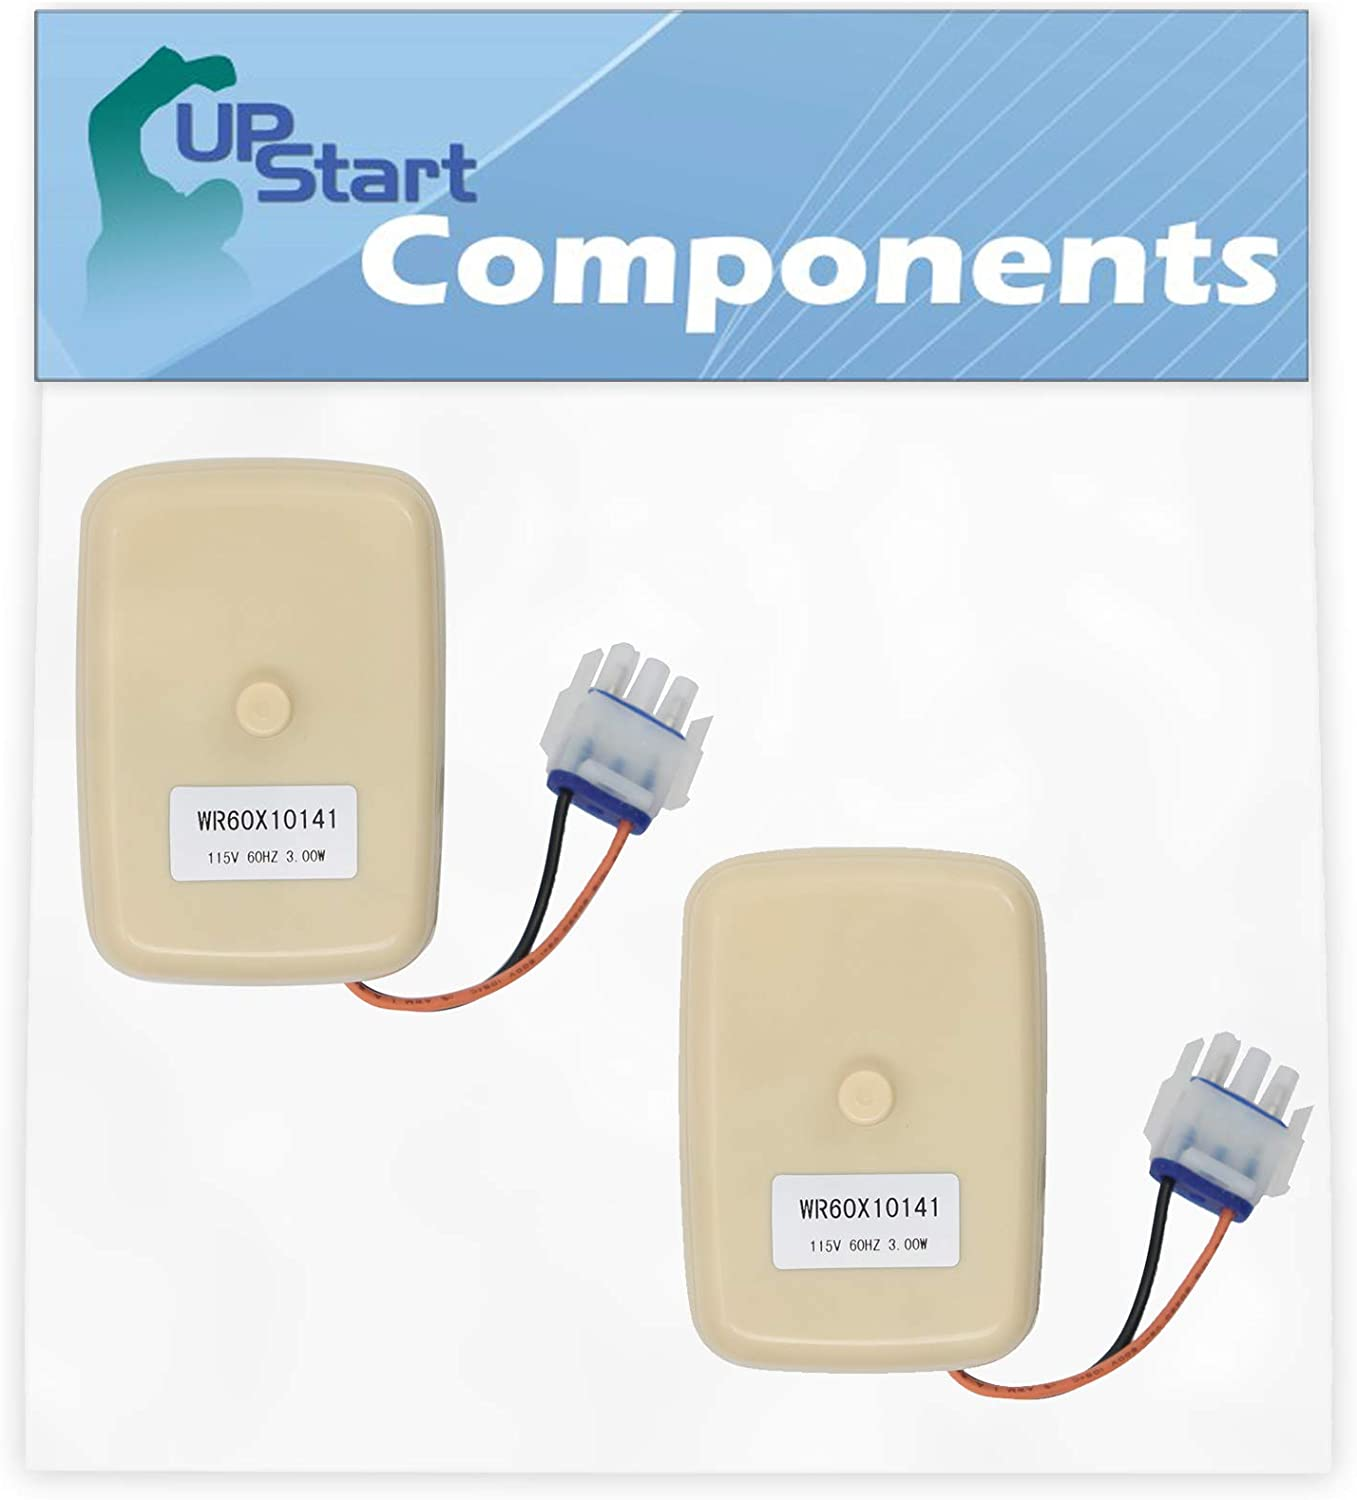 2-Pack WR60X10141 Evaporator Fan Motor Replacement for General Electric GTS18HBSARWW Refrigerator - Compatible with WR60X23584 Fan Motor - UpStart Components Brand